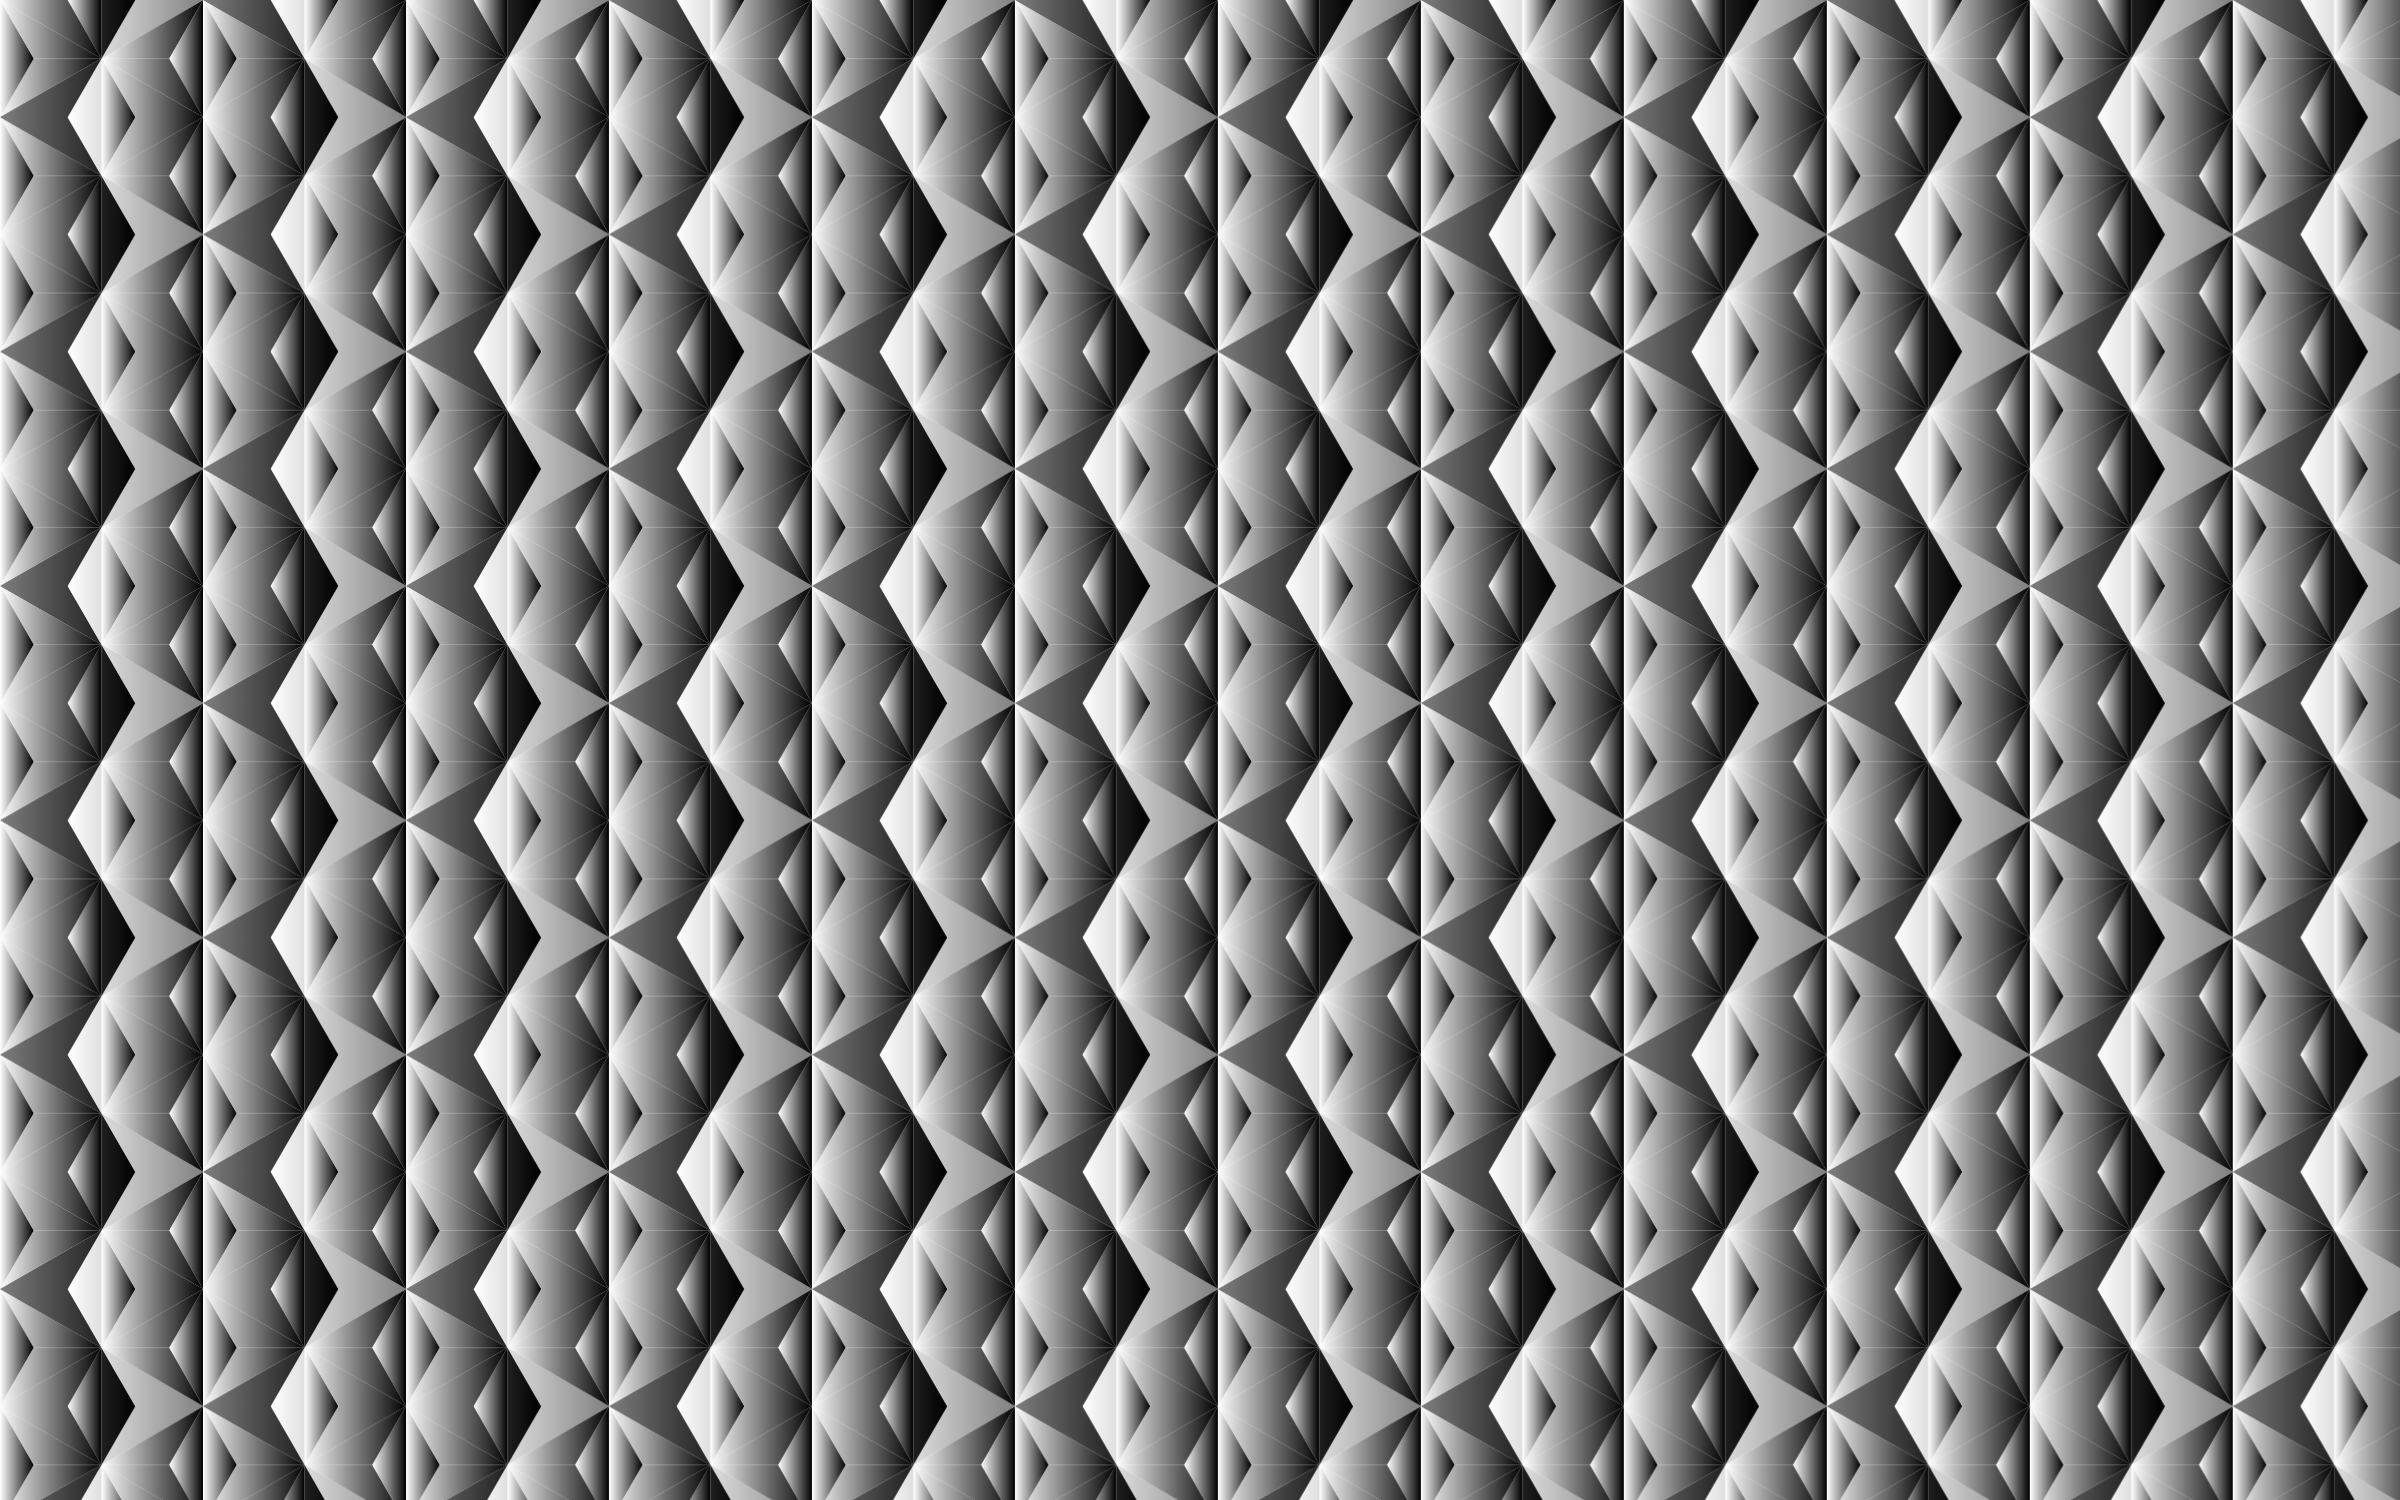 Seamless Hexagonal Diamonds Grayscale Pattern 2 by GDJ